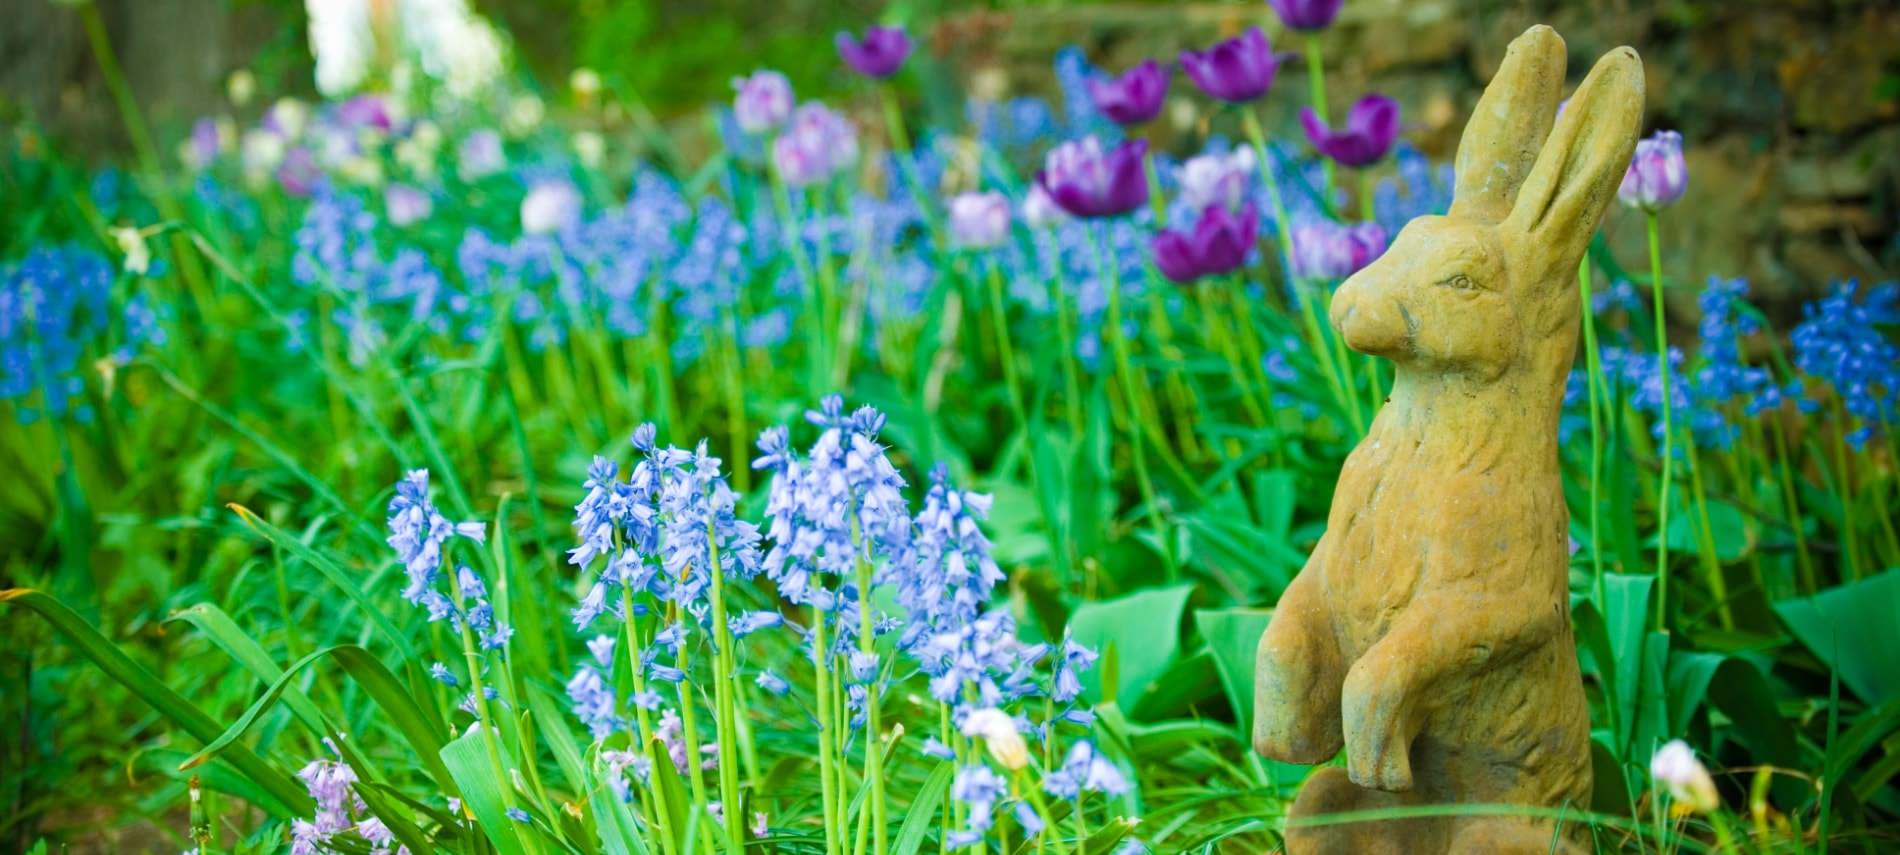 Stone statue of a rabbit surrounded by blue and purple flowers and green grass